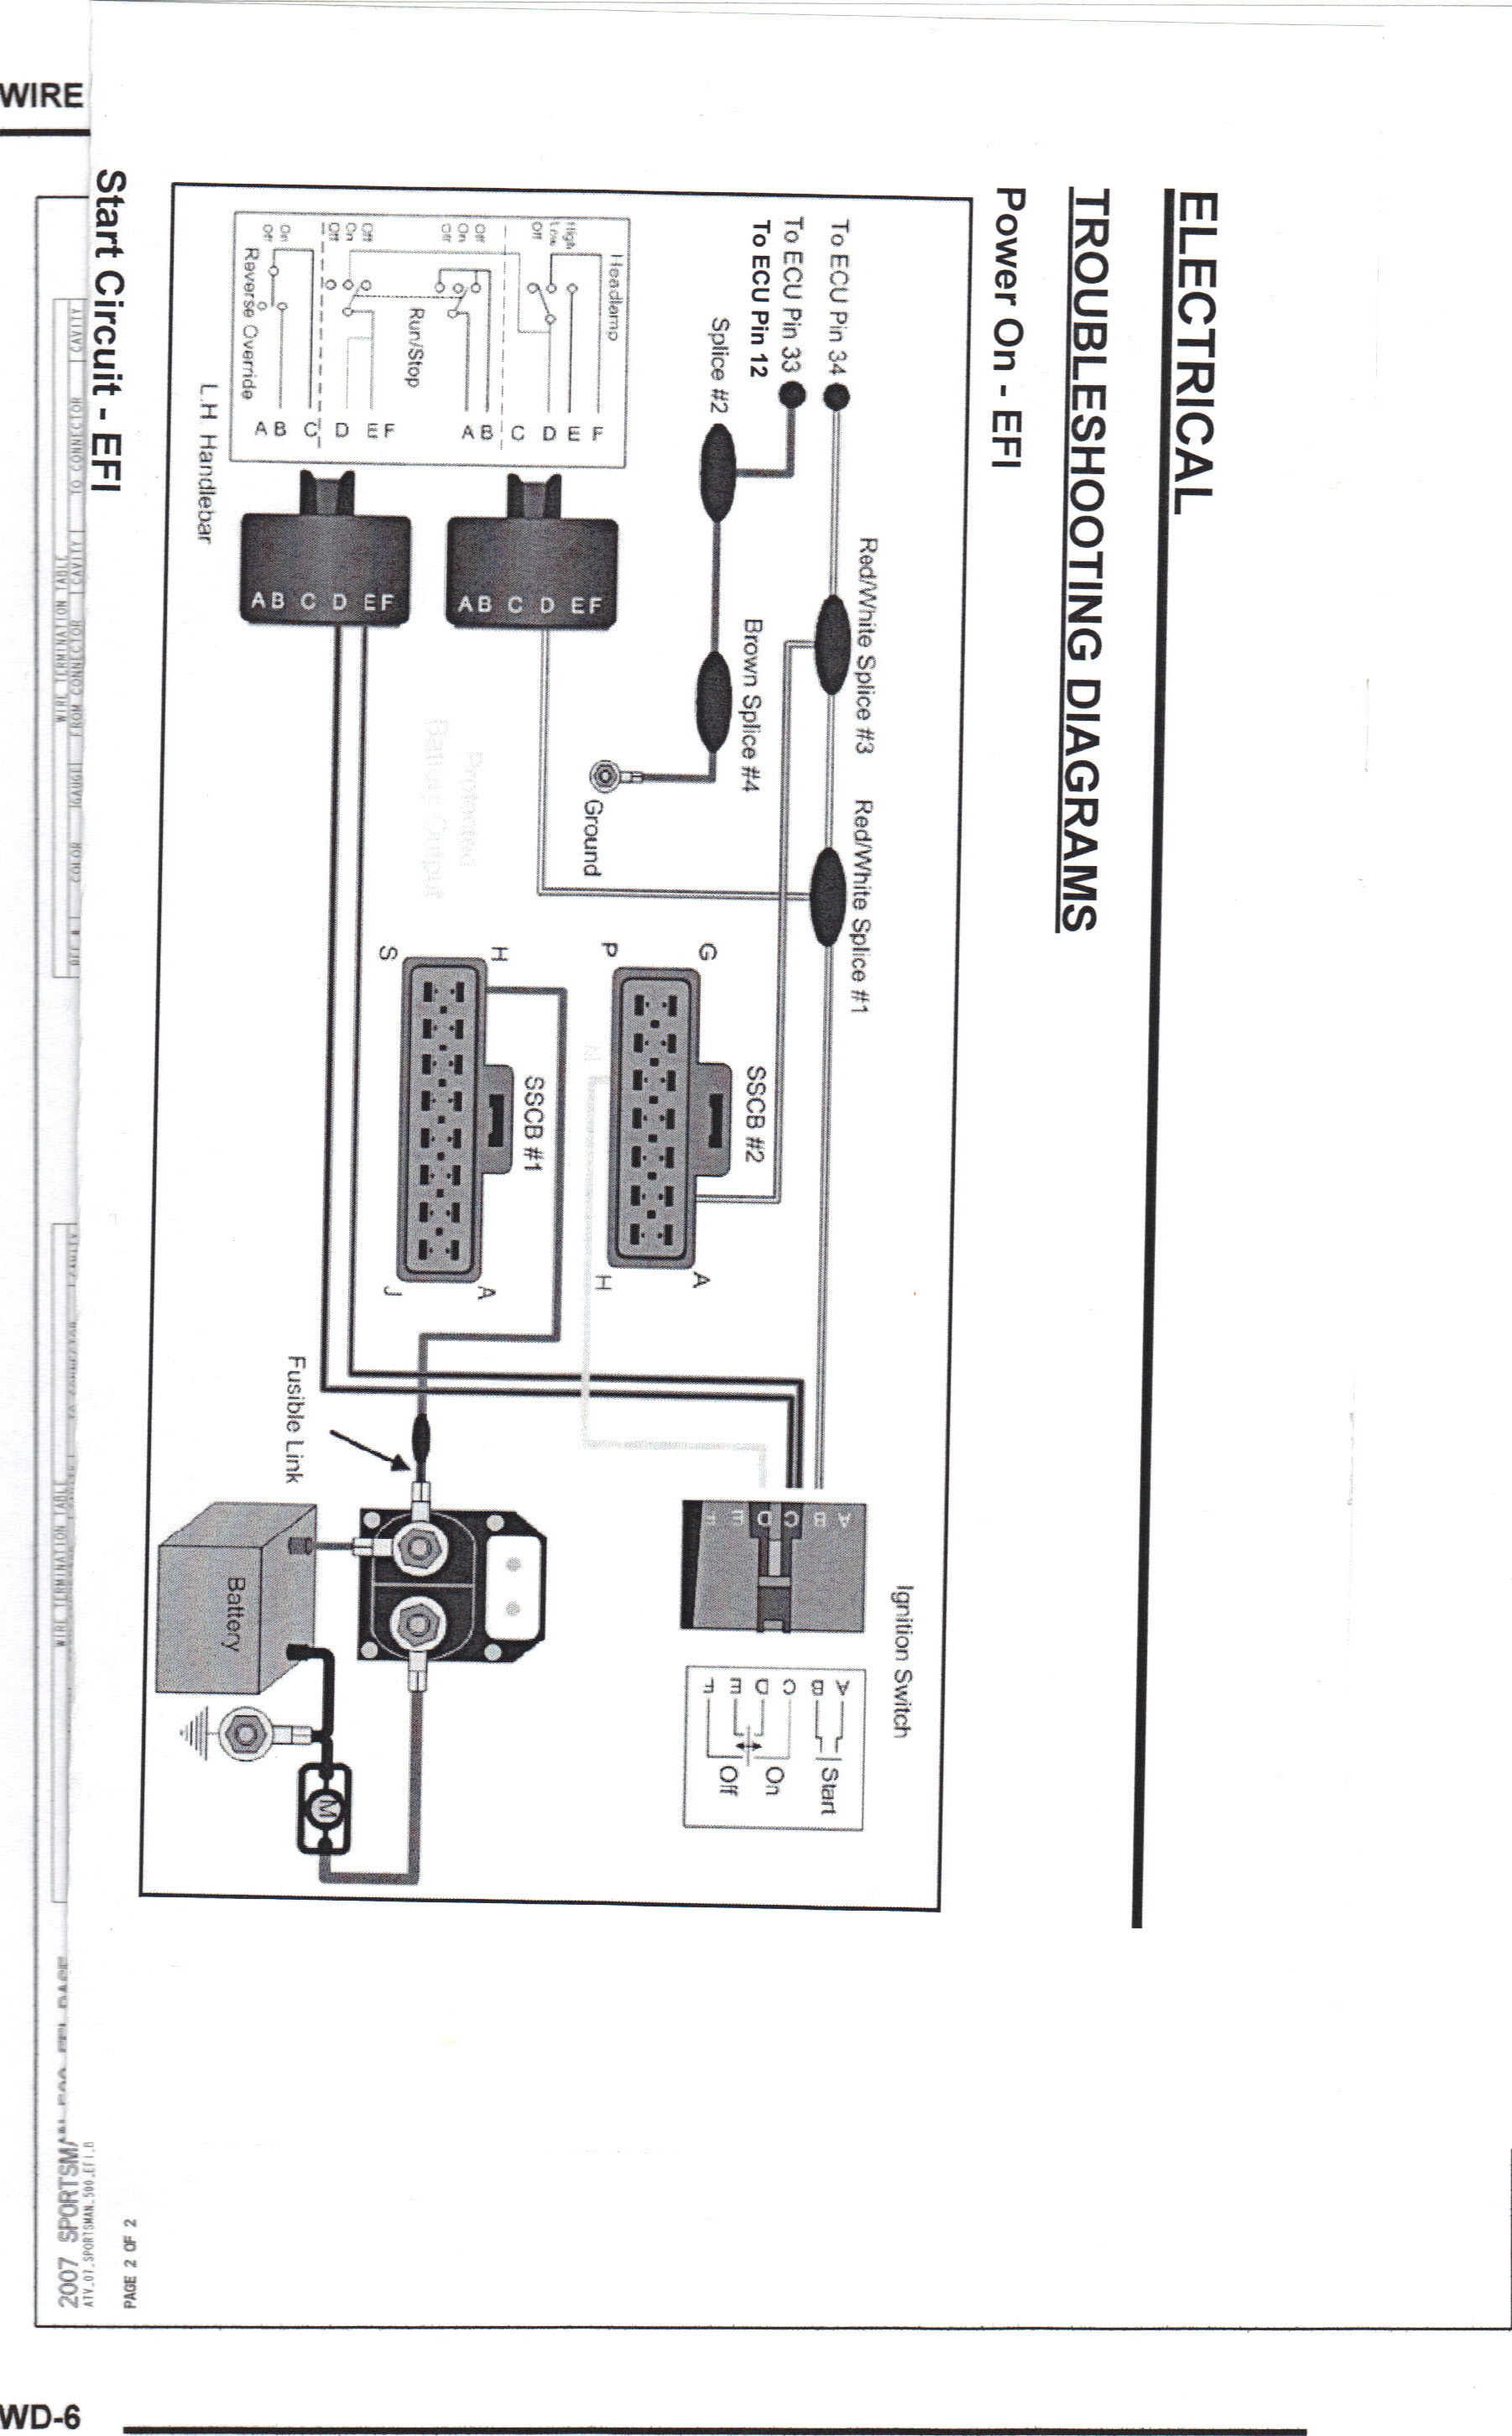 Find Out Here 2004 Polaris Sportsman 400 Wiring Diagram Sample